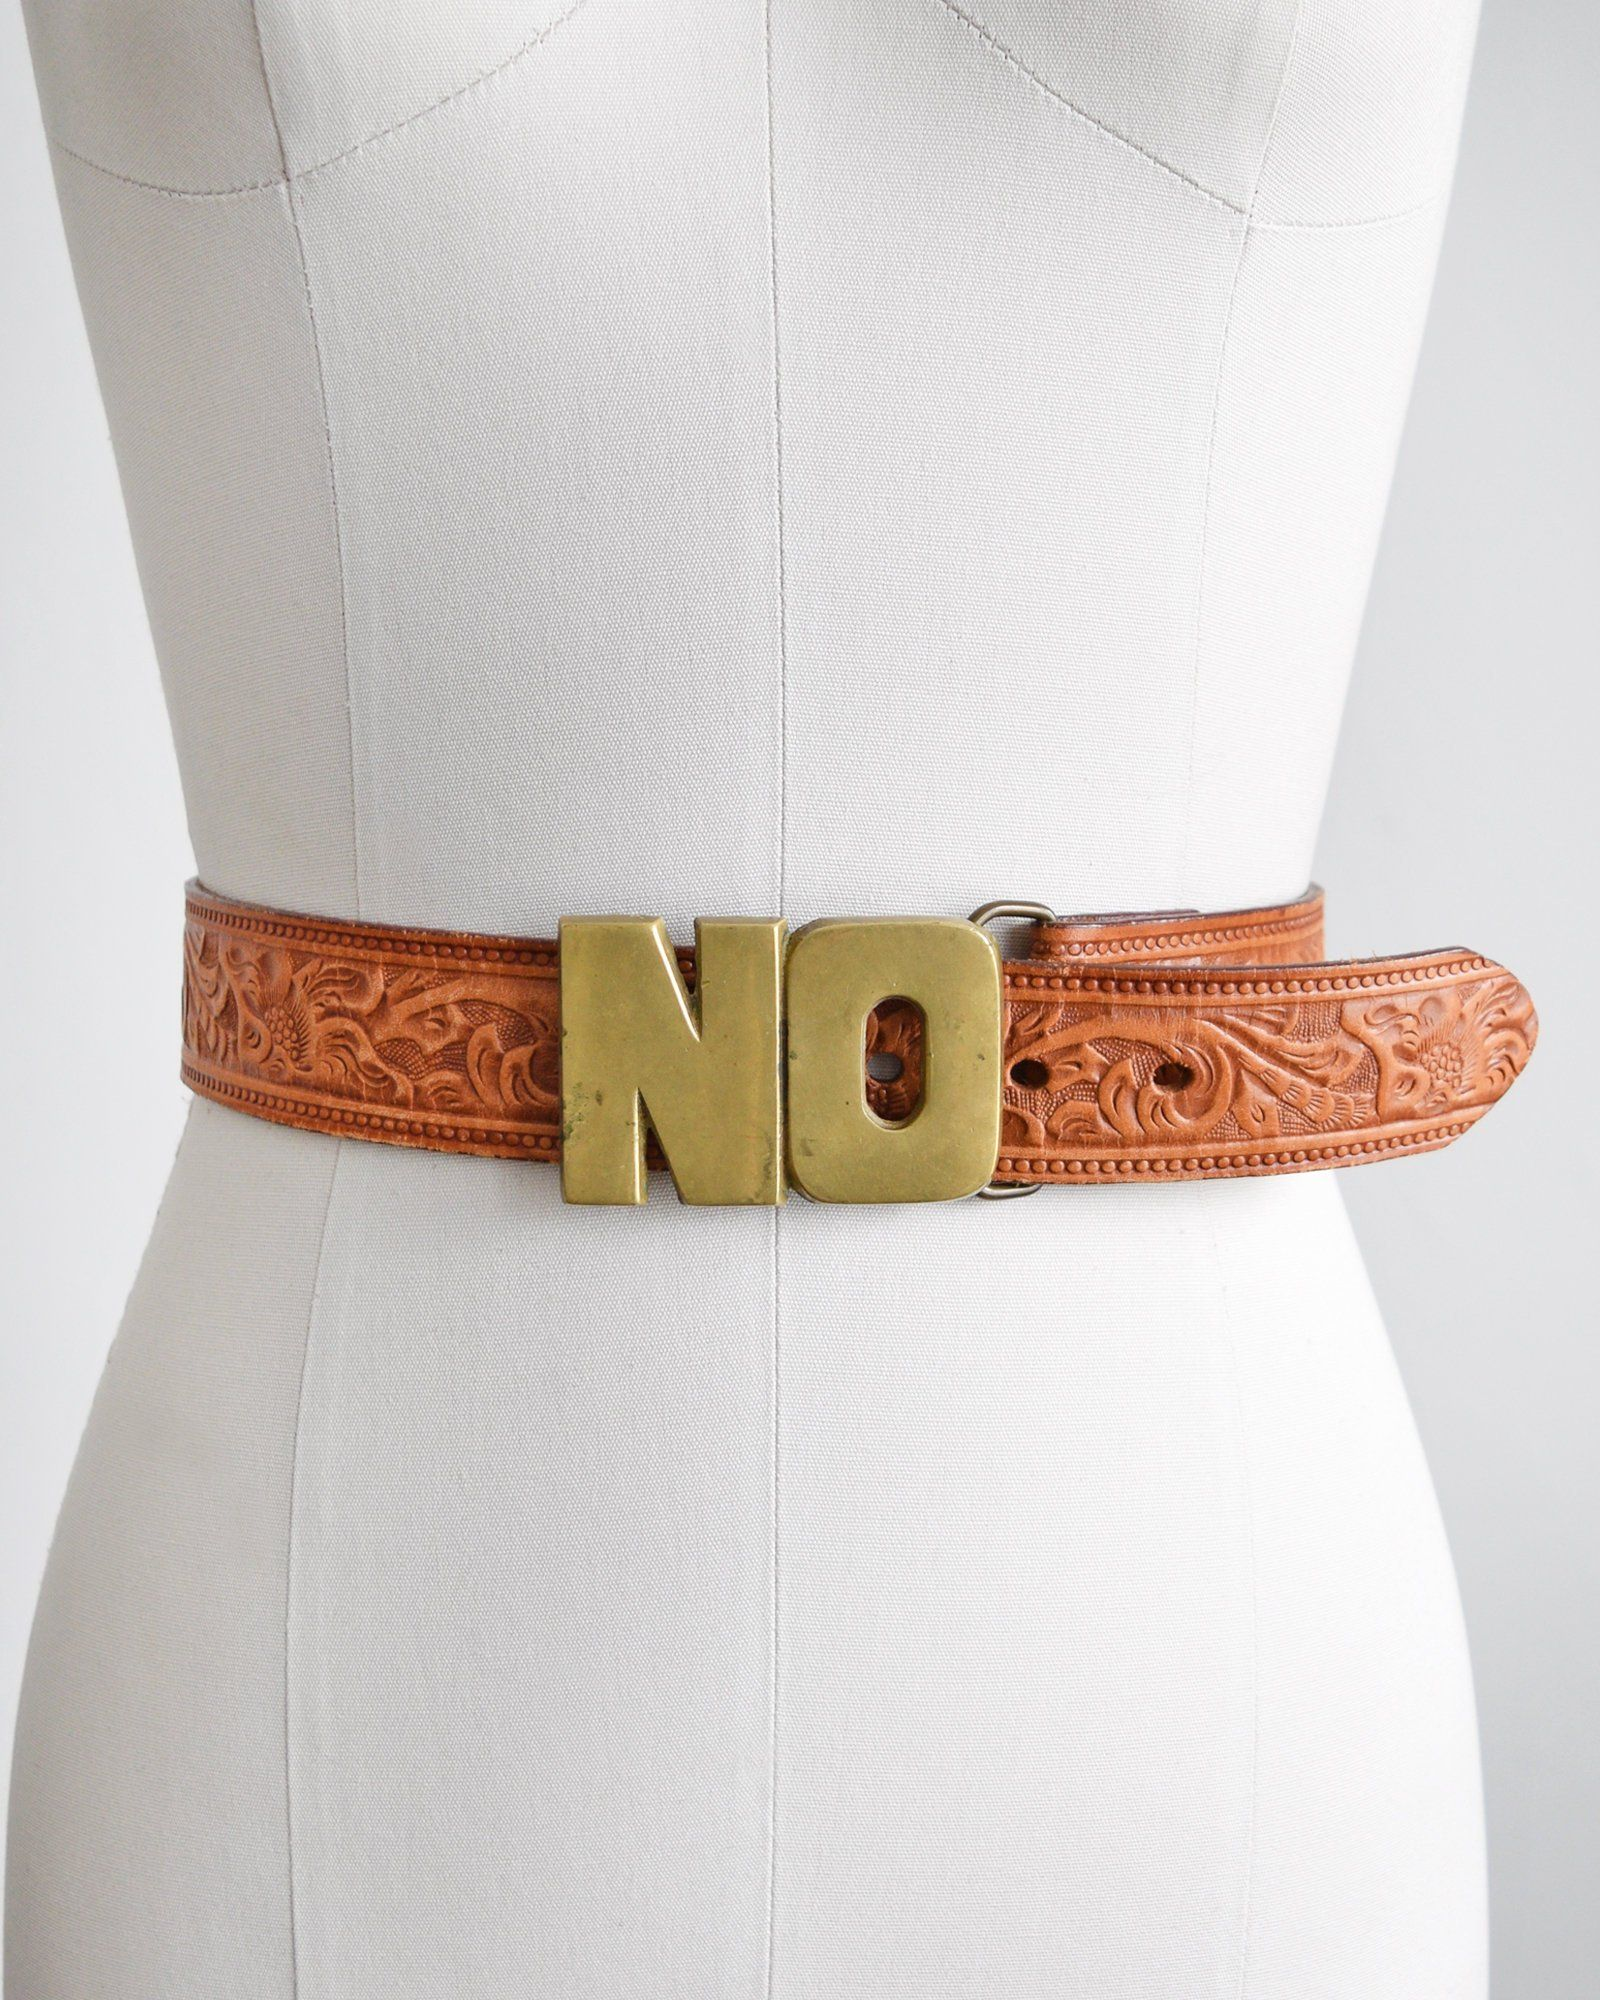 70s Tooled Leather Belt W No Brass Belt Buckle Vintage 1970s Etsy Brass Belt Buckles Leather Tooling Belt